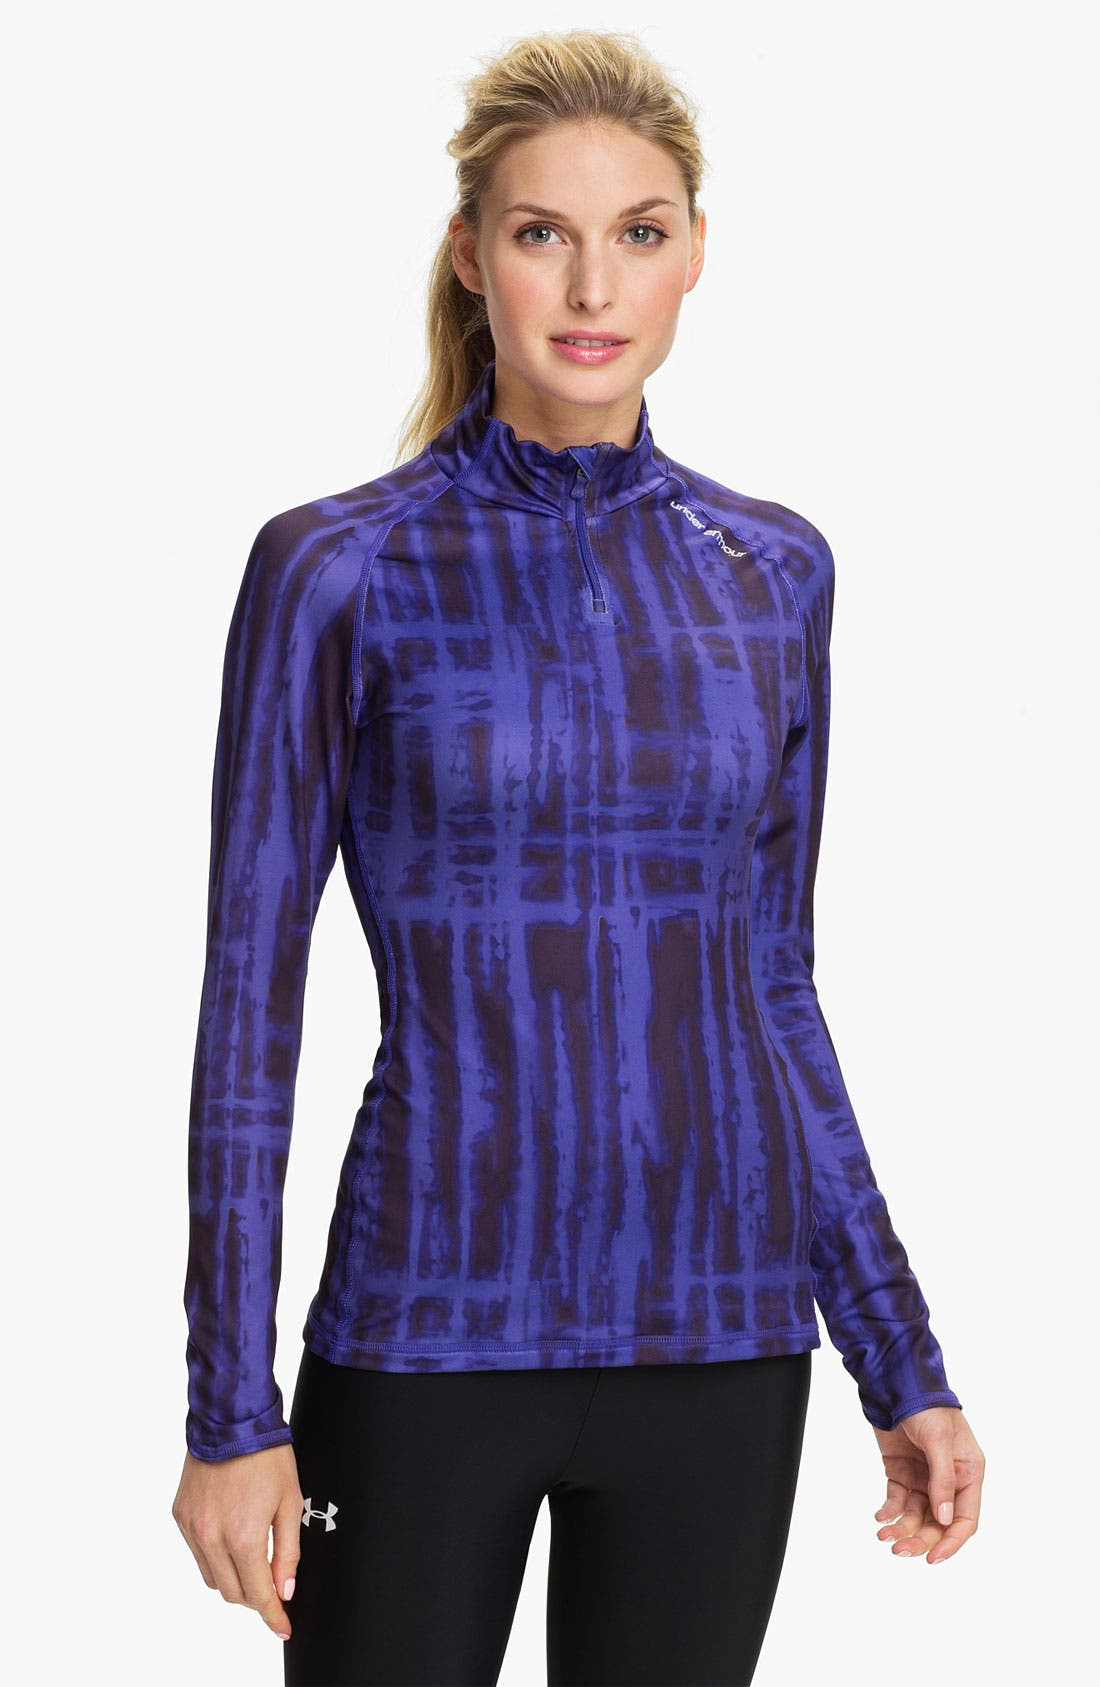 Alternate Image 1 Selected - Under Armour ColdGear® Print Quarter Zip Top